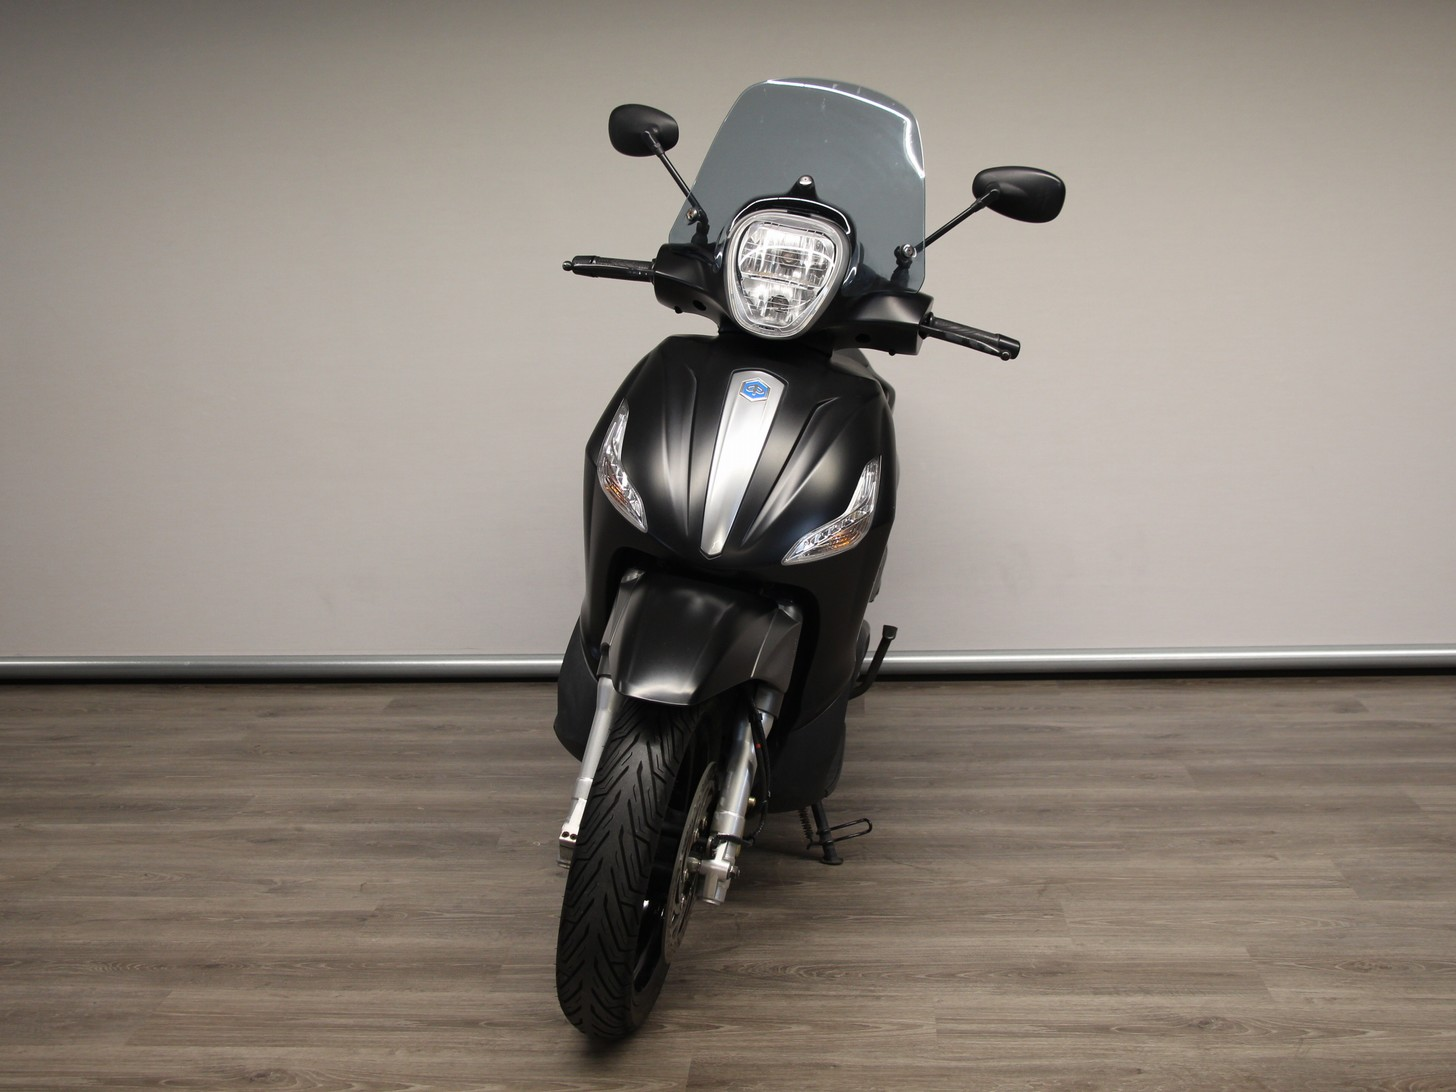 PIAGGIO - BEVERLY 350 SPORT ABS